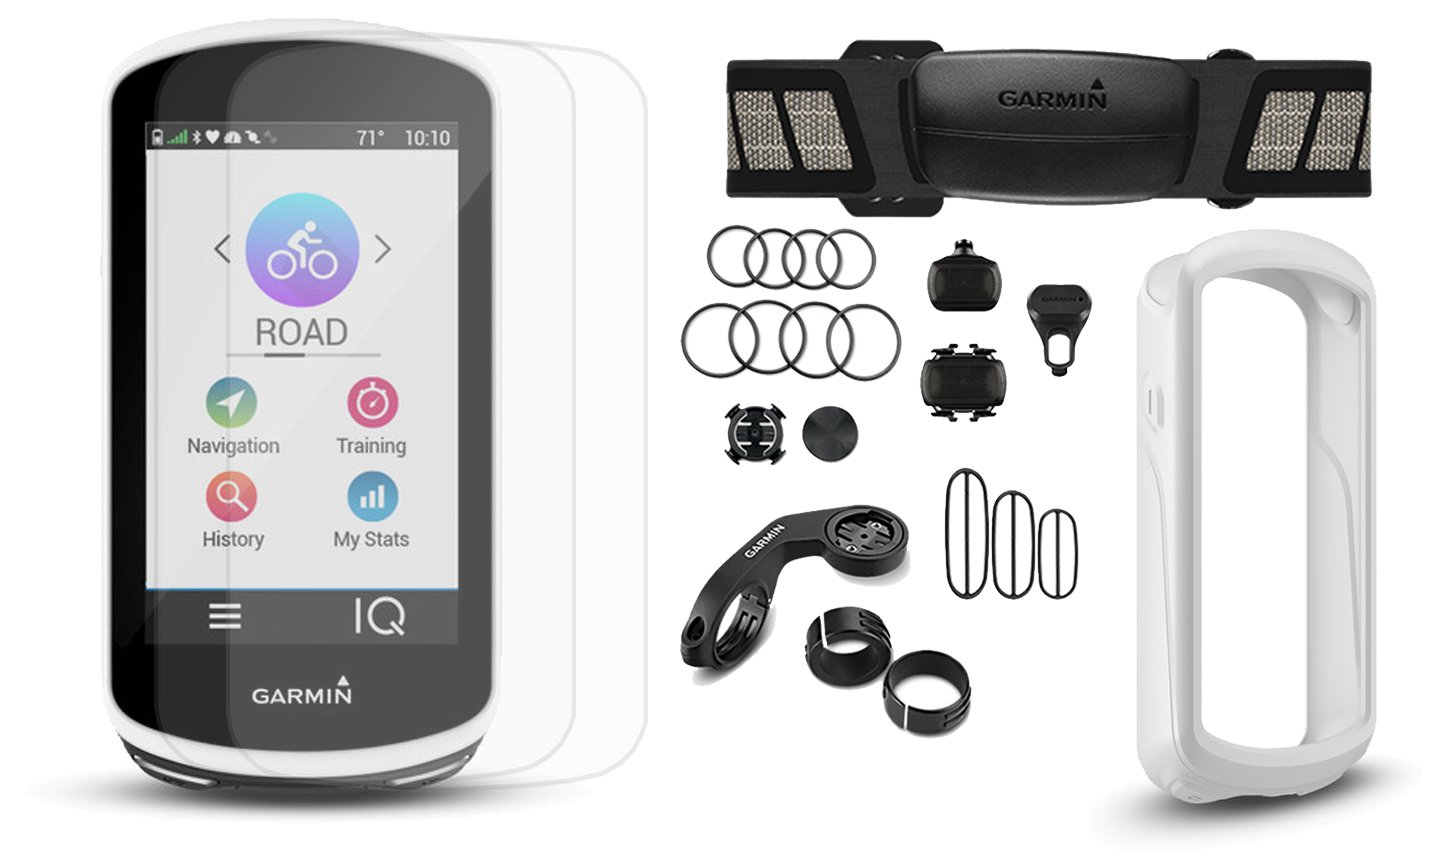 Garmin Edge 1030 Cycle Bundle   with Chest HRM, Speed/Cadence Sensors, PlayBetter Silicone Case & Glass Screen Protectors   Bike Mounts   GPS Bike Computer, Navigation (+Bundle, White Case)